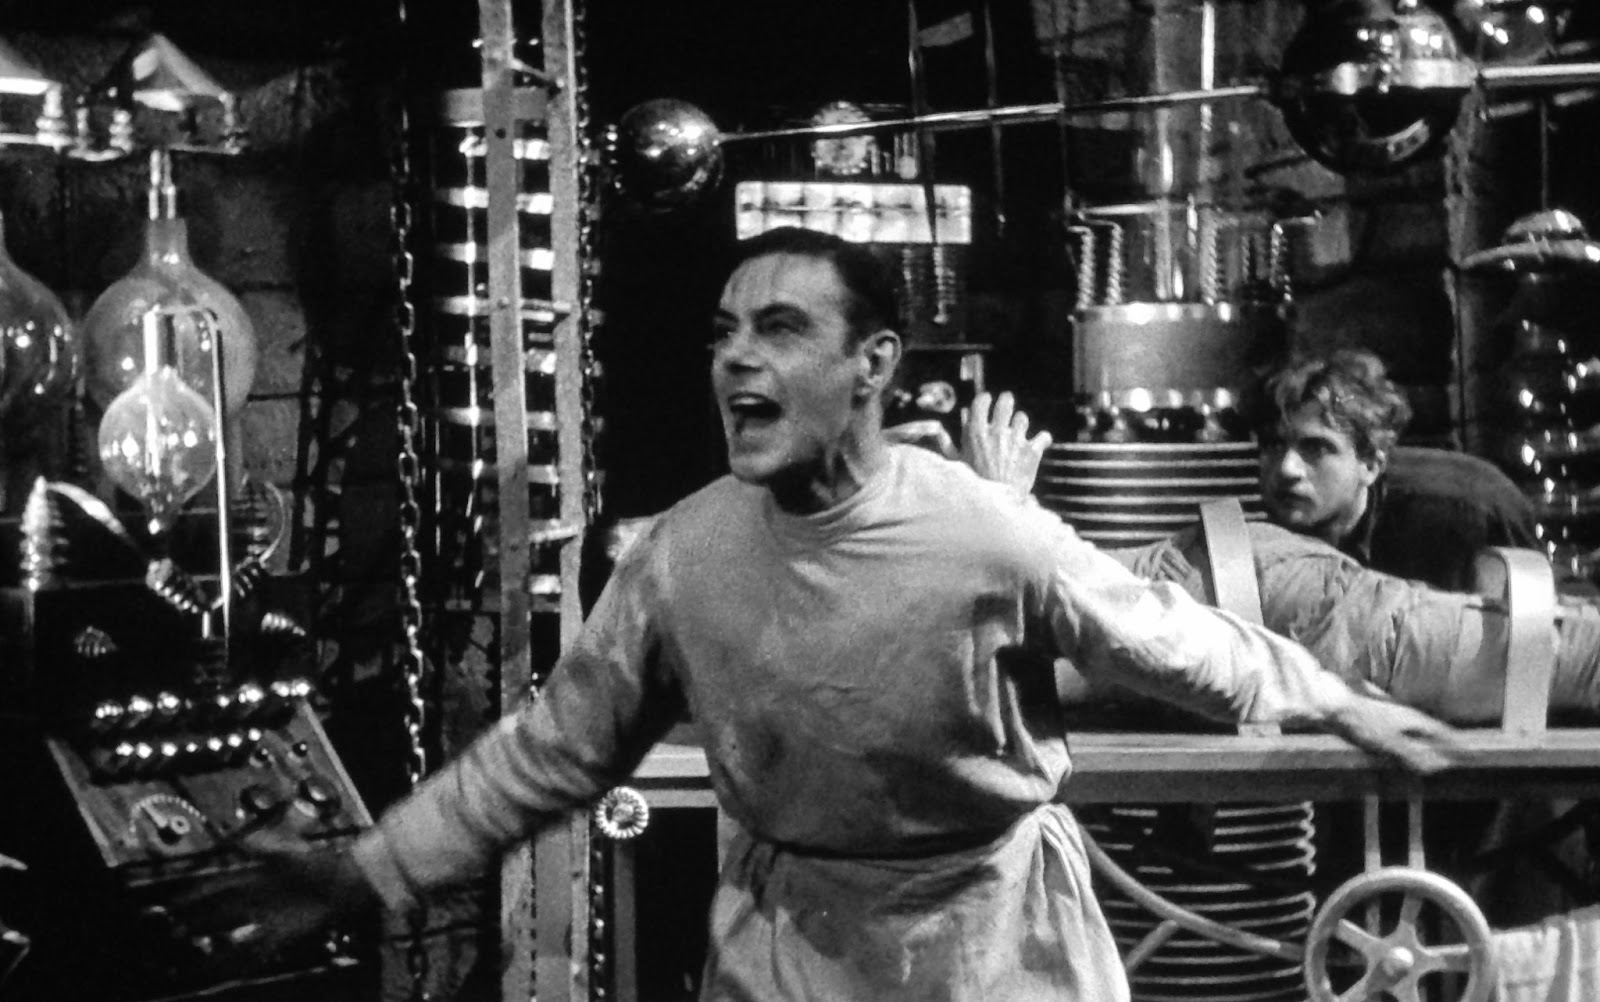 an analysis of victor frankensteins scientific work Explanation of the famous quotes in frankenstein the beauty and simplicity of the phrasing epitomize the eighteenth-century scientific victor utters these.